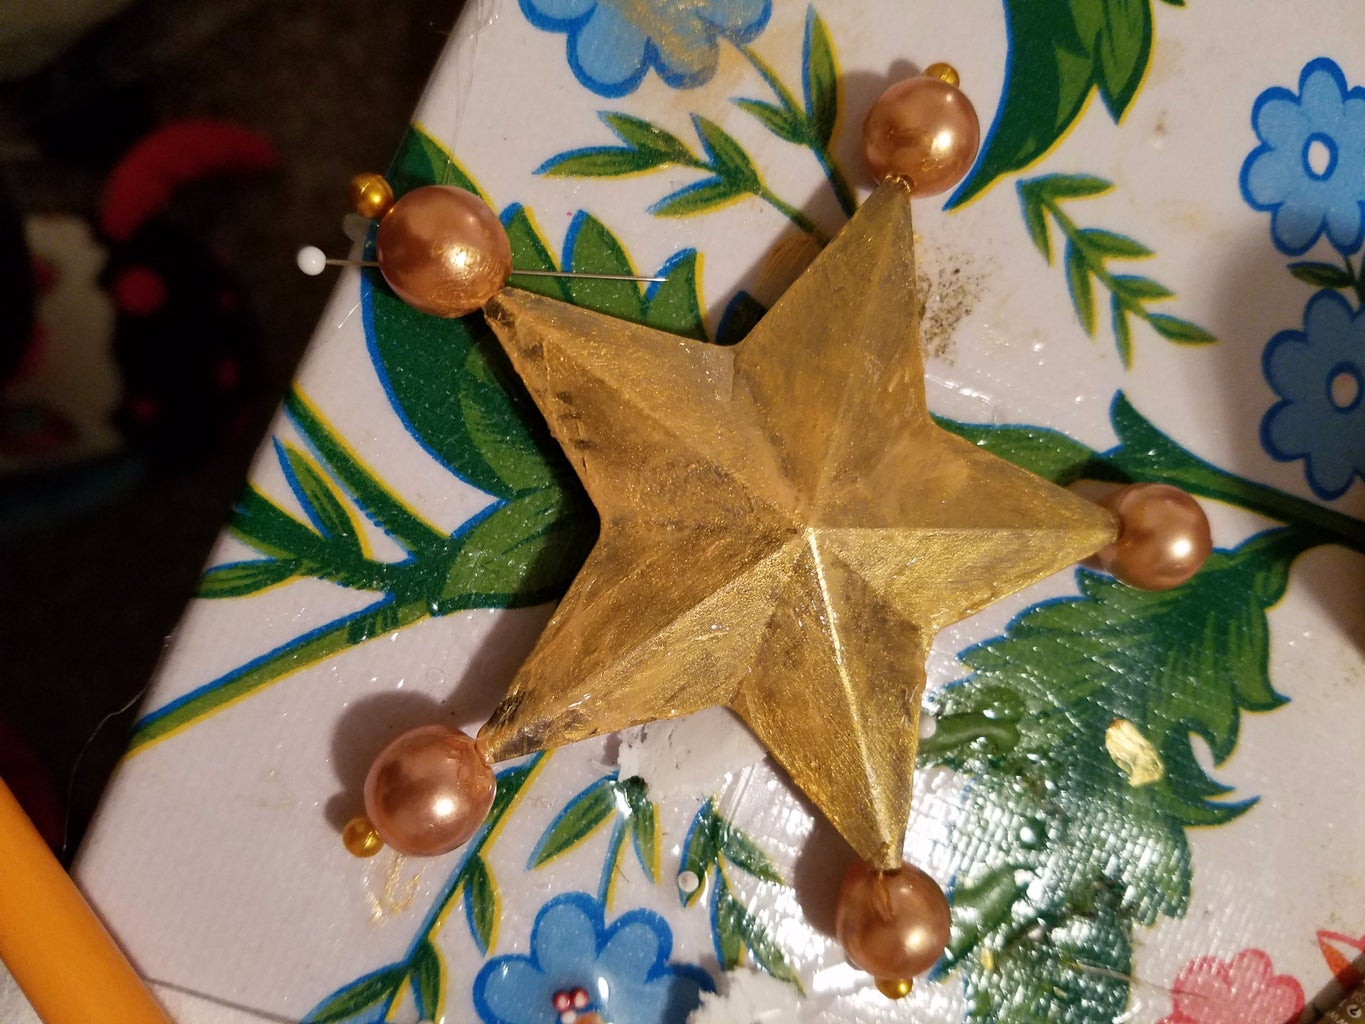 Put the Round Beads on the Star